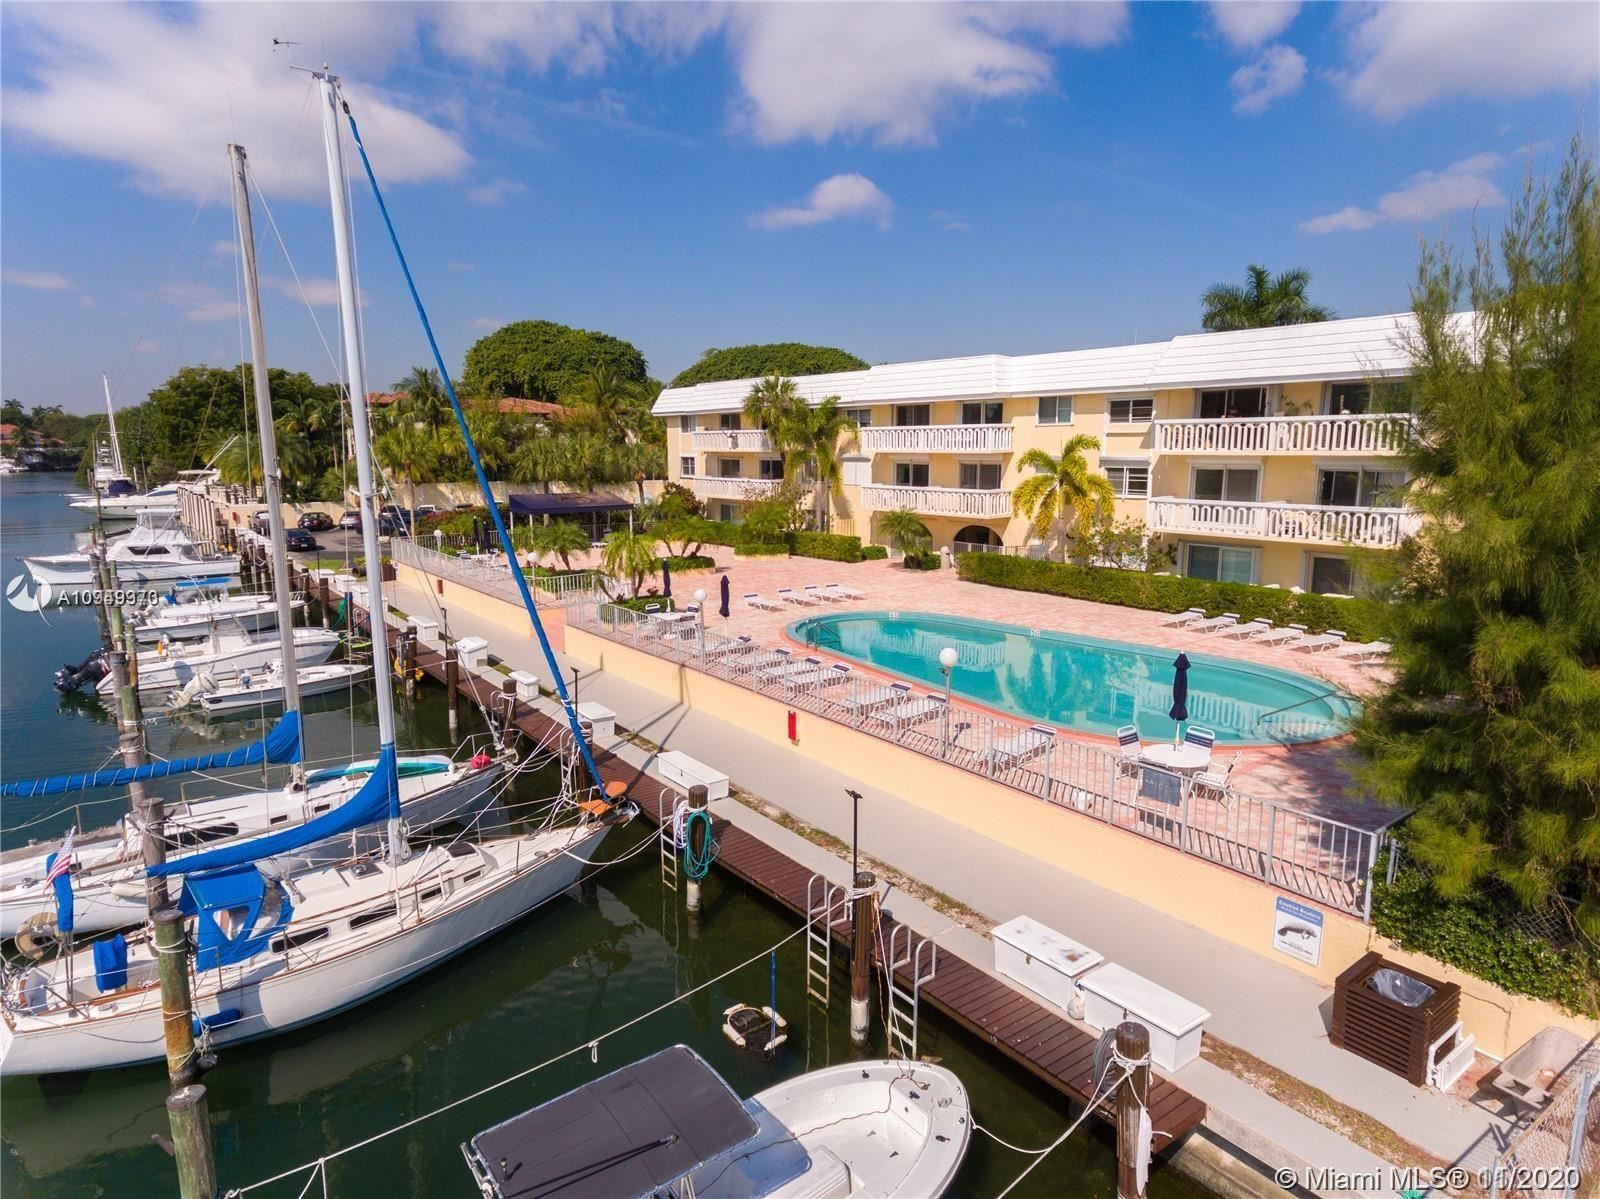 100 Edgewater Dr #117, Coral Gables, FL 33133 - #: A10949373